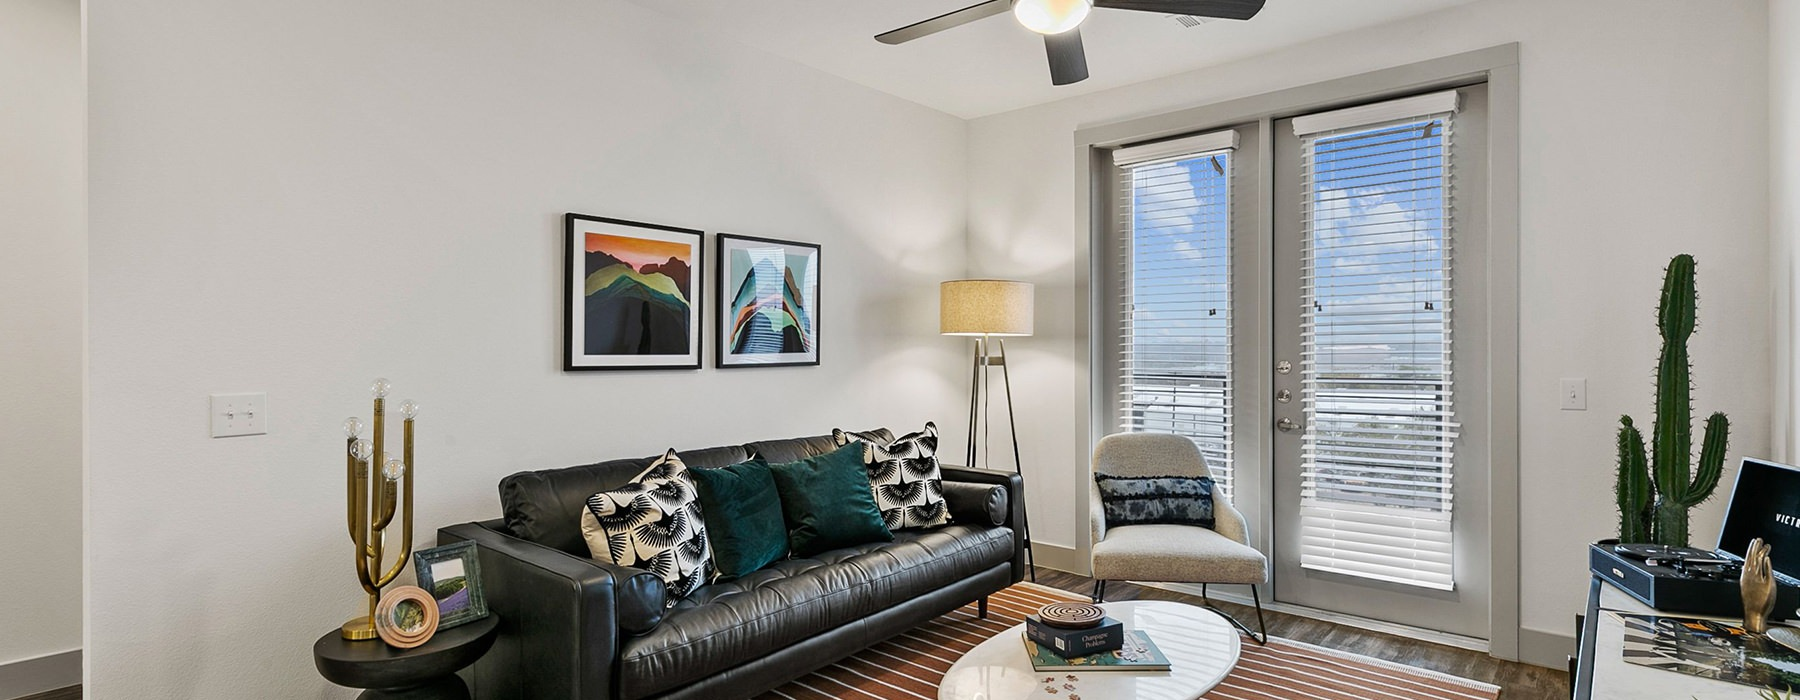 Explore Photos Of Our Apartments Near Downtown Fort Worth